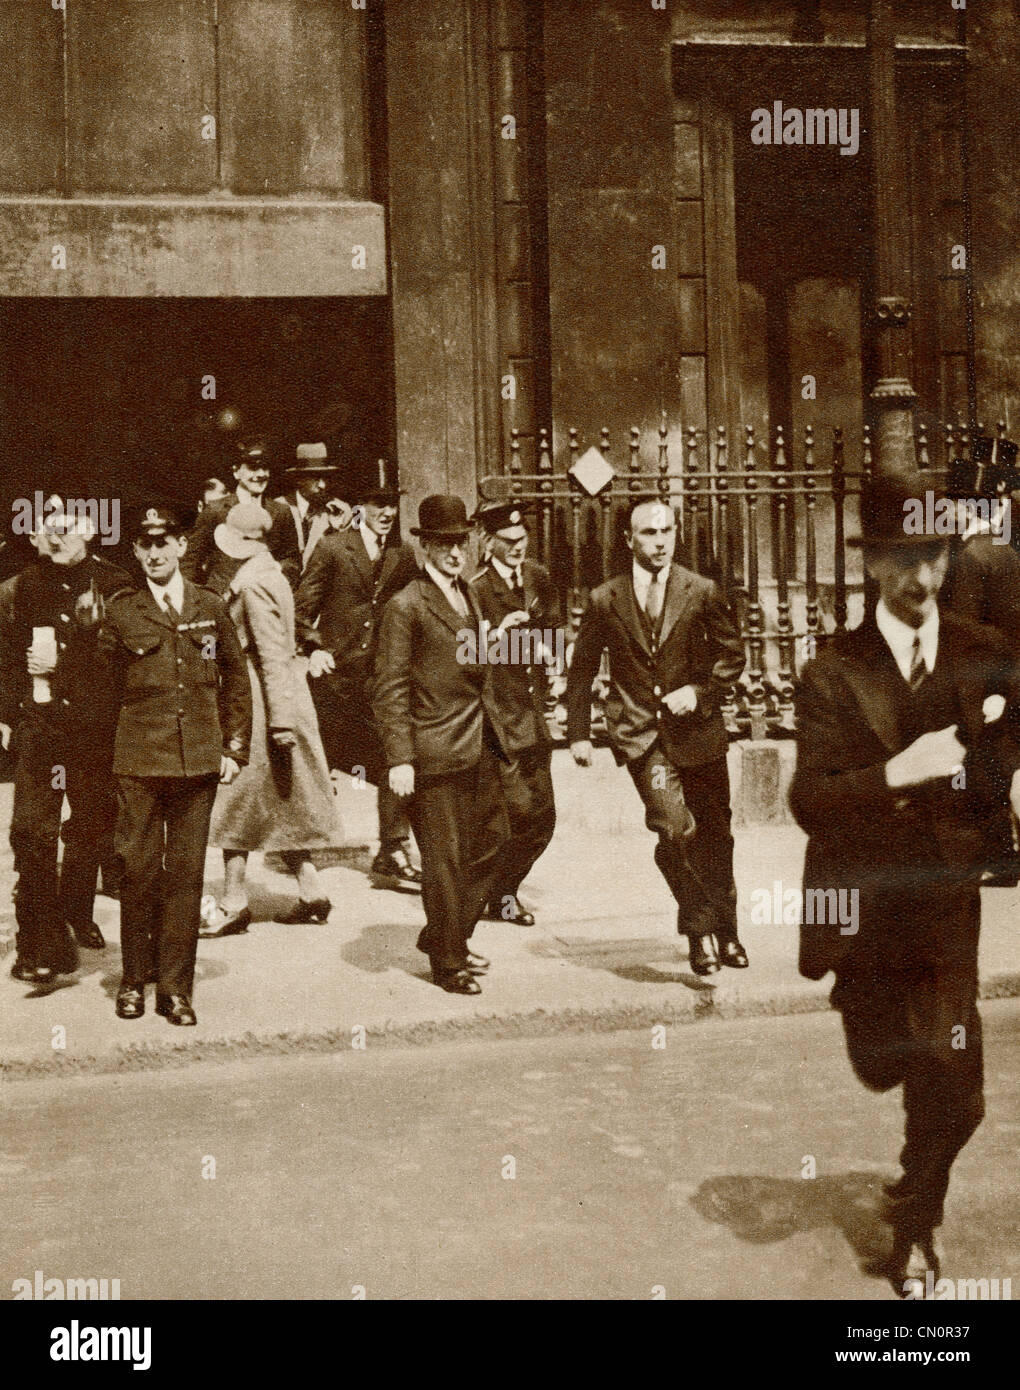 The great financial crisis of 1931, clerks rushing out of the bank after the fall of the bank rate - Stock Image